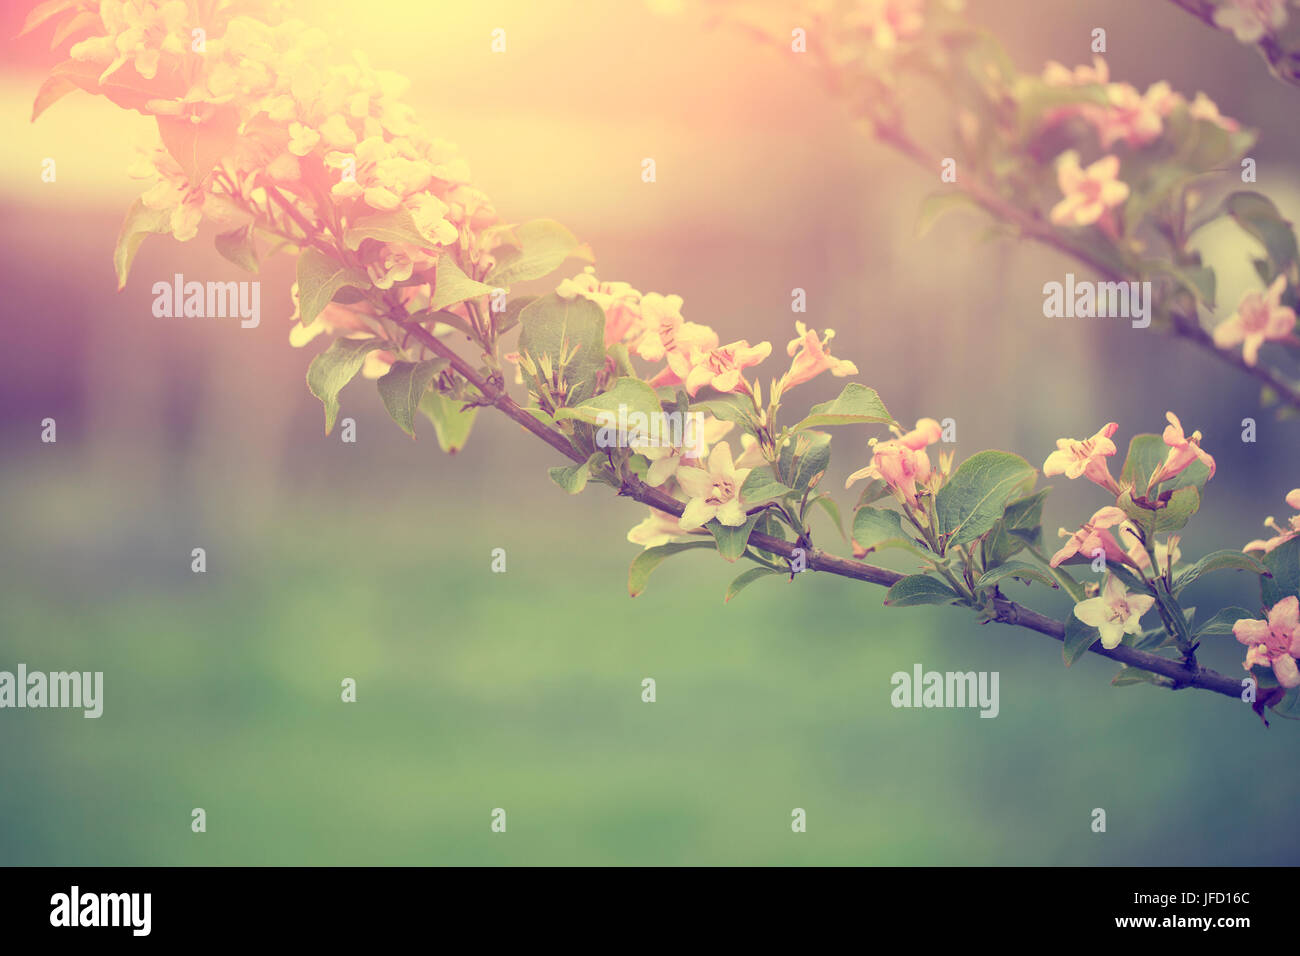 Tree flower blossoms at spring in april - Stock Image